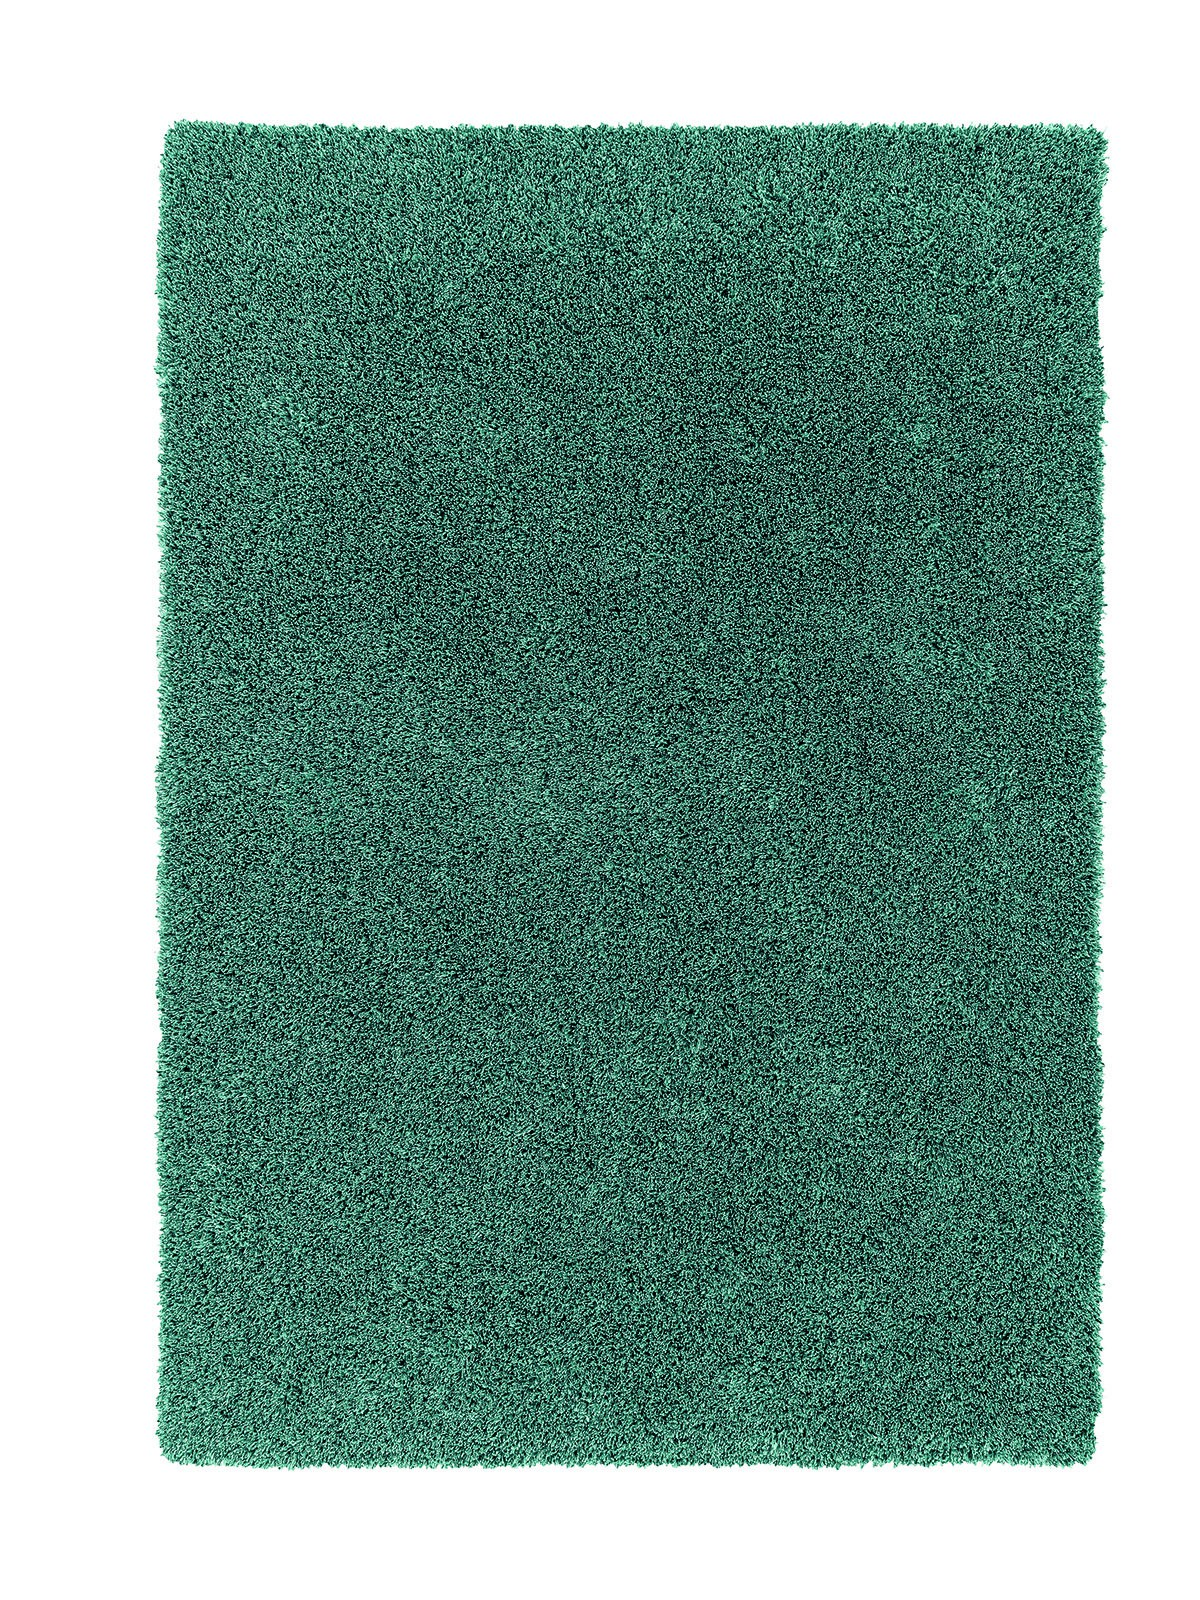 Carpet shaggy sch ner wohnen new feeling blue 150037 for Schoener wohnen